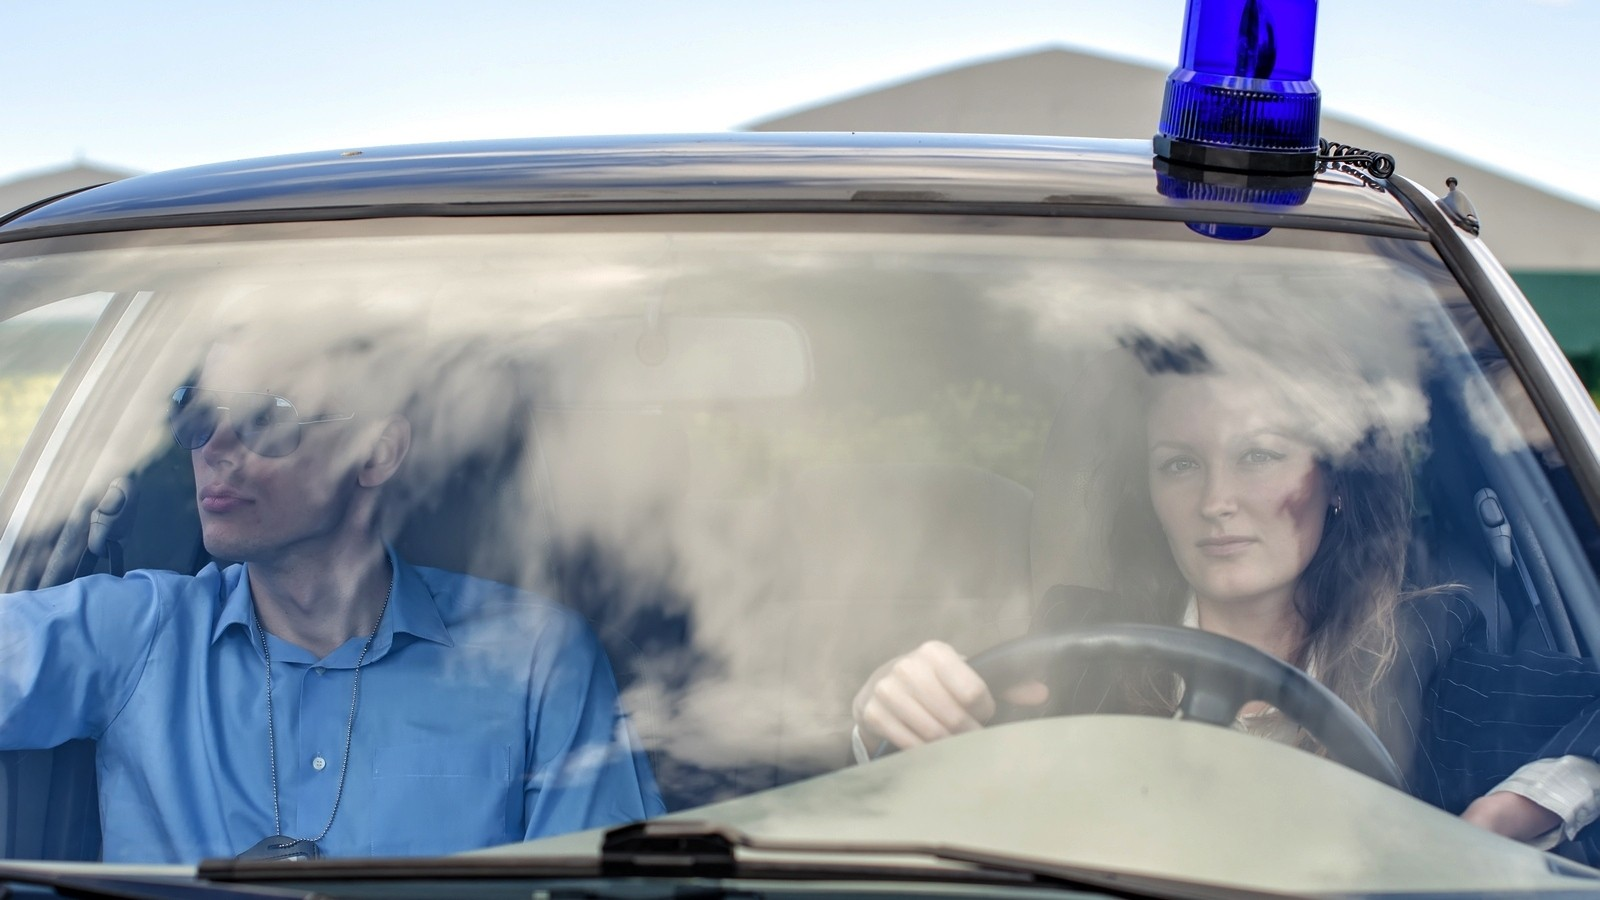 Two young detectives driving to crime scene. Windscreen view